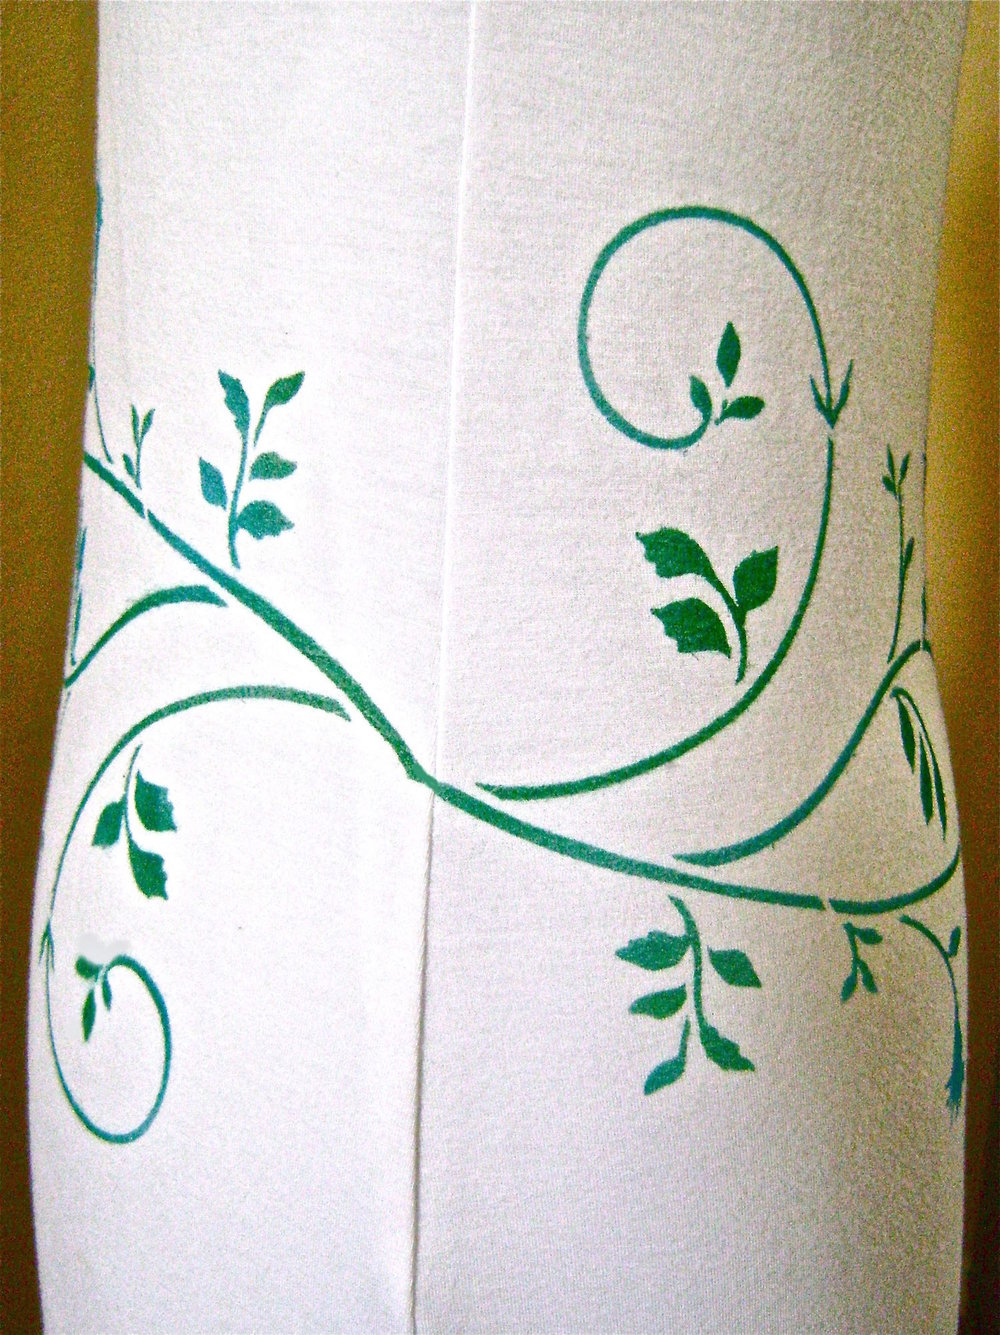 step 3 - Give some thought to how you'll match up the stencil design at the side seams to eliminate a large gap in the design when the front and back pieces are sewn together. You may be able to achieve this by masking portions of the stencil with tape before painting, or by repeating only a portion of the stencil. The horizontal width of your fabric pieces will be a big factor in matching the painted design at the side seams.  Even if a perfect match may not be possible, an acceptable transition should.